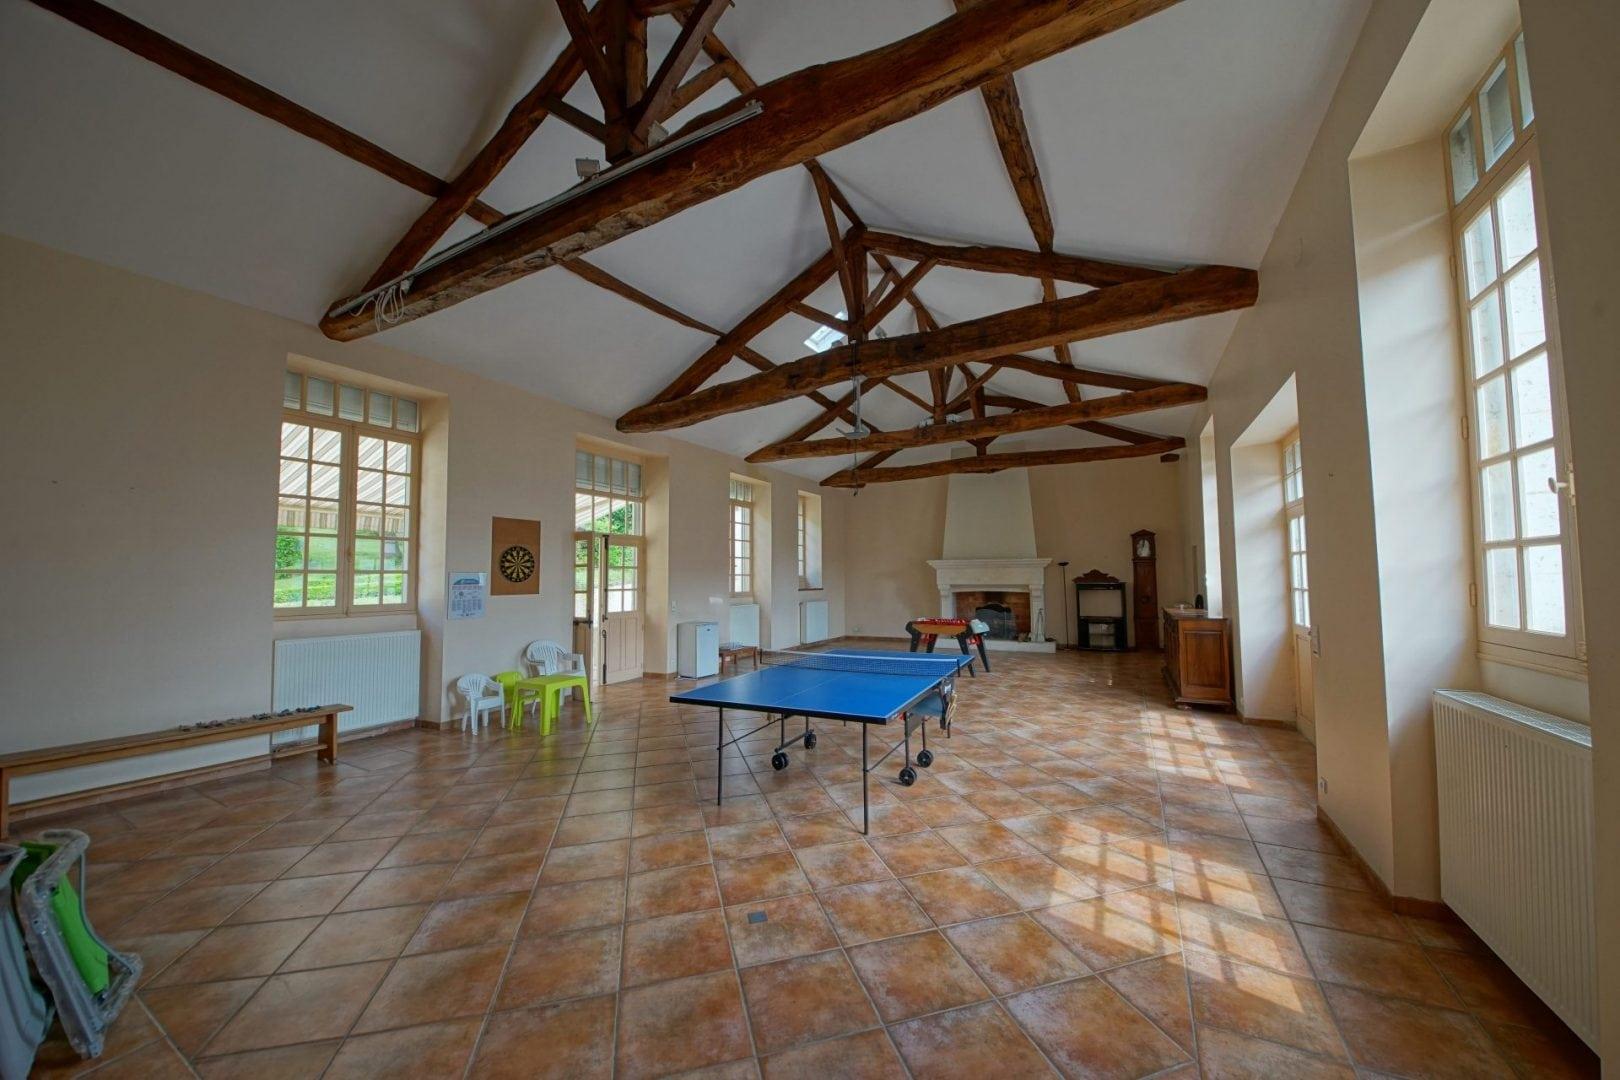 Dordogne, village house, sleeps 10, child friendly, private pool, piano